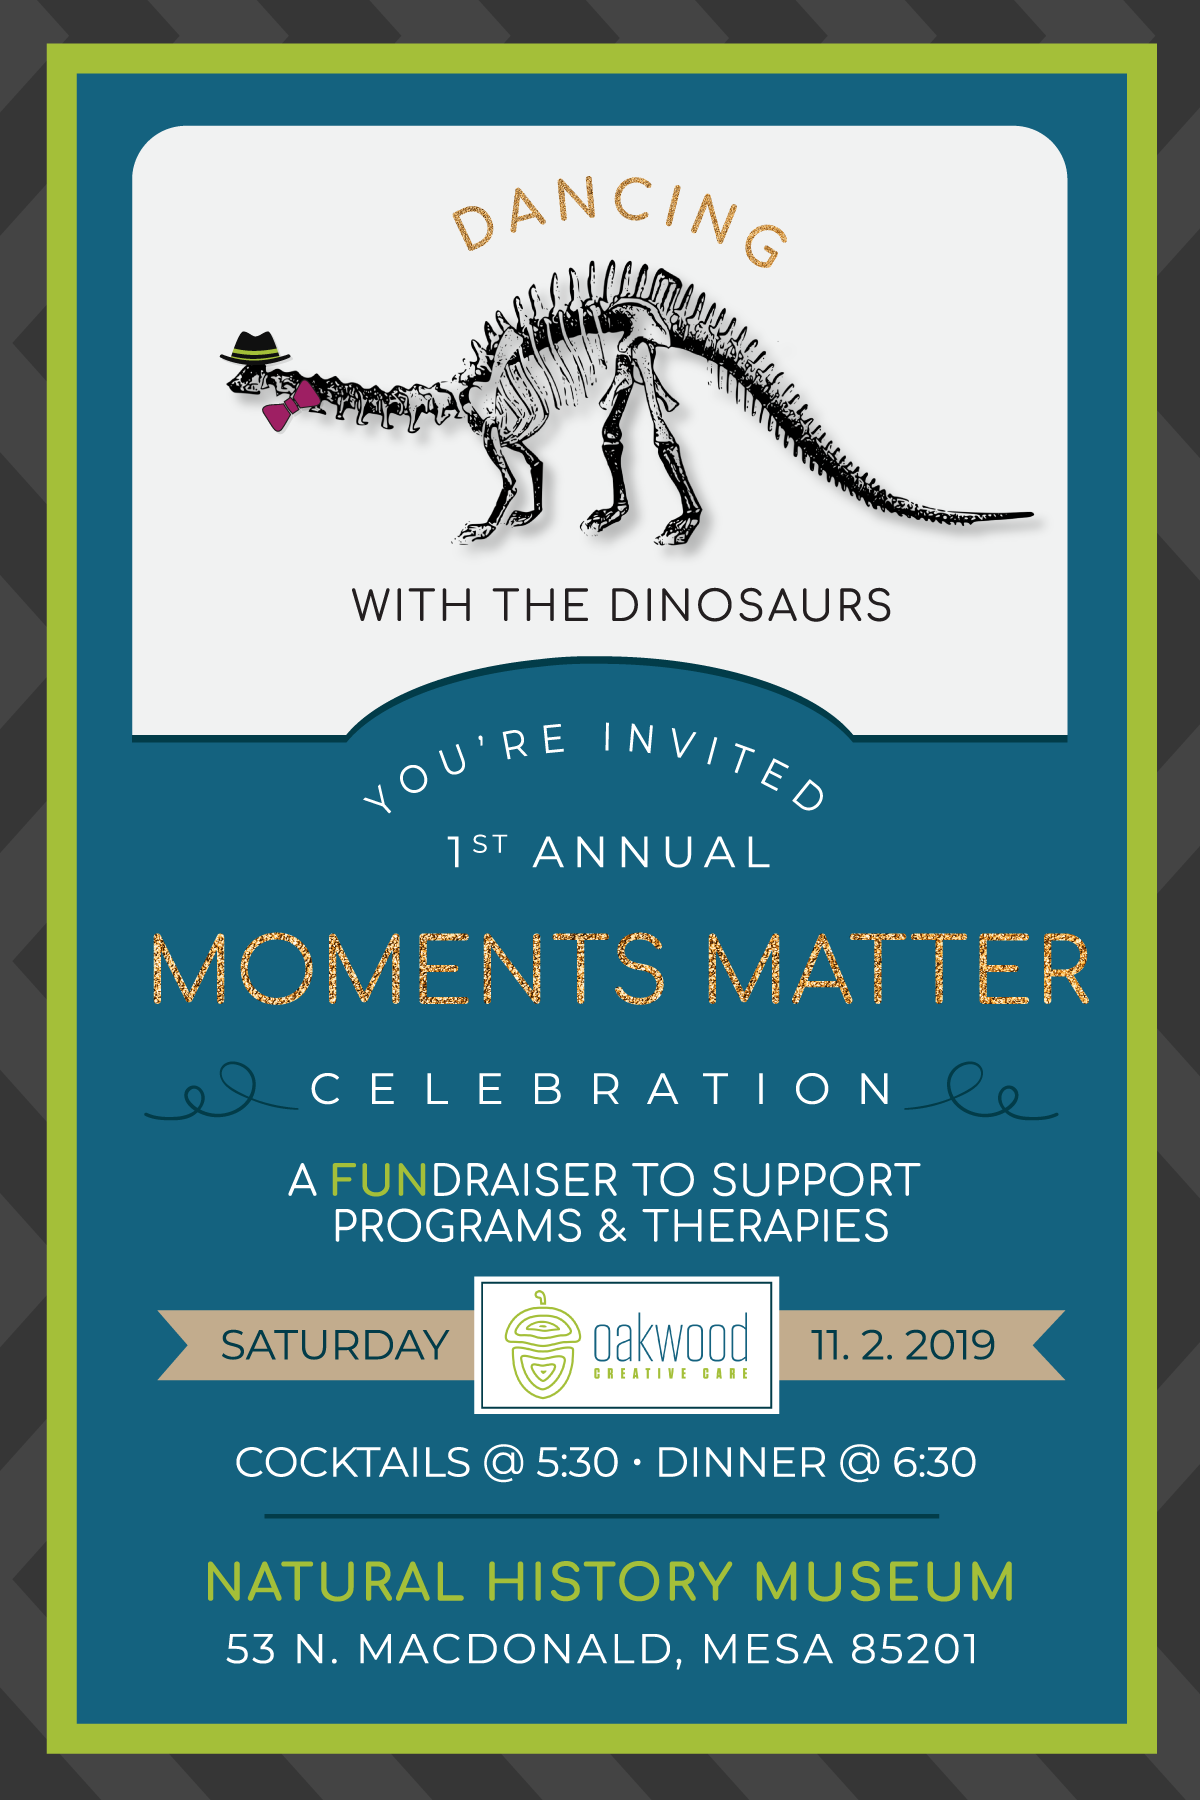 Dancing with the dinasours invite PNG_Page_1.png